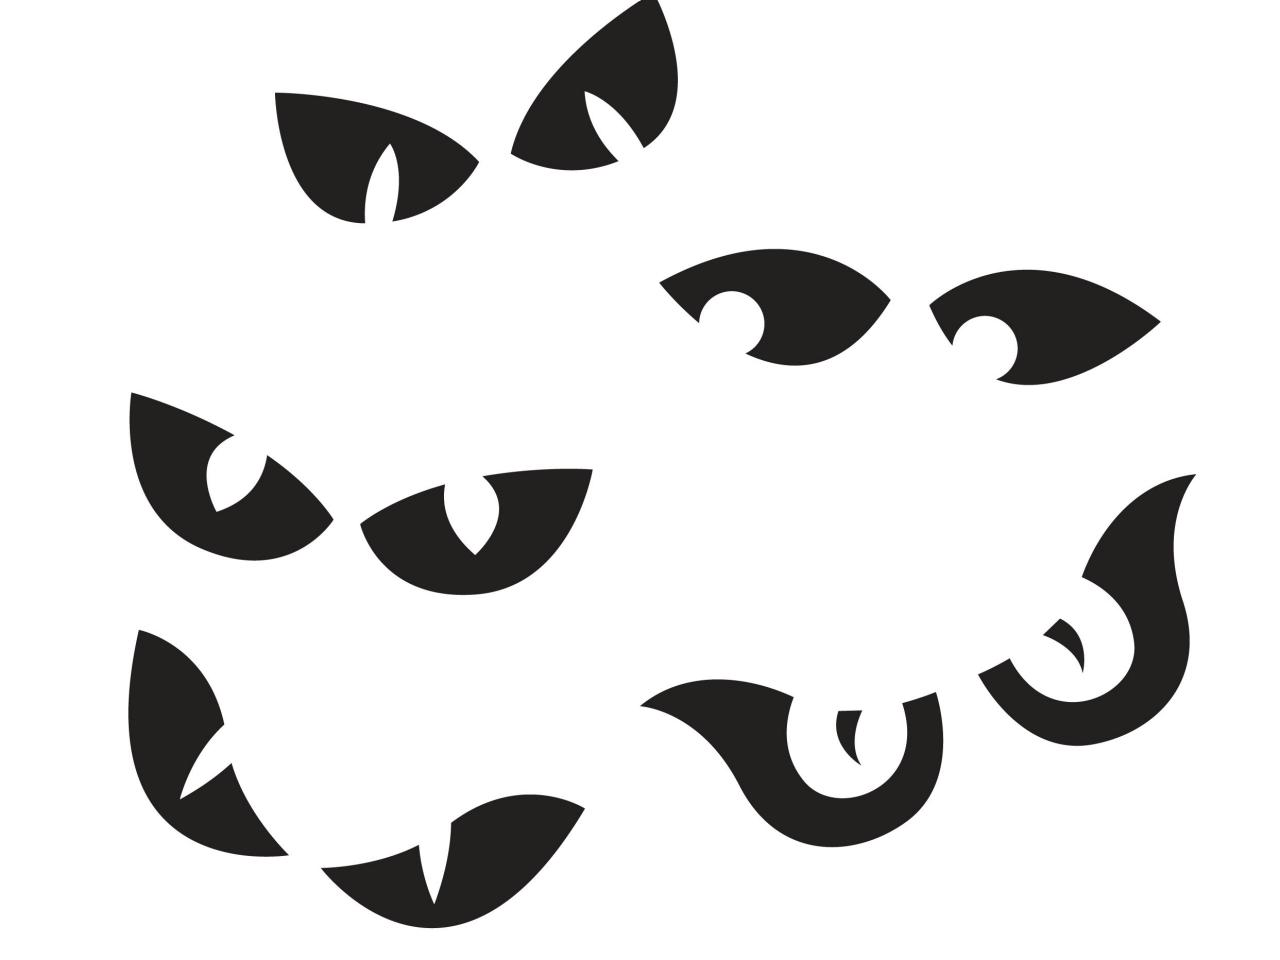 Scary silhouette at getdrawings. Bat clipart eye